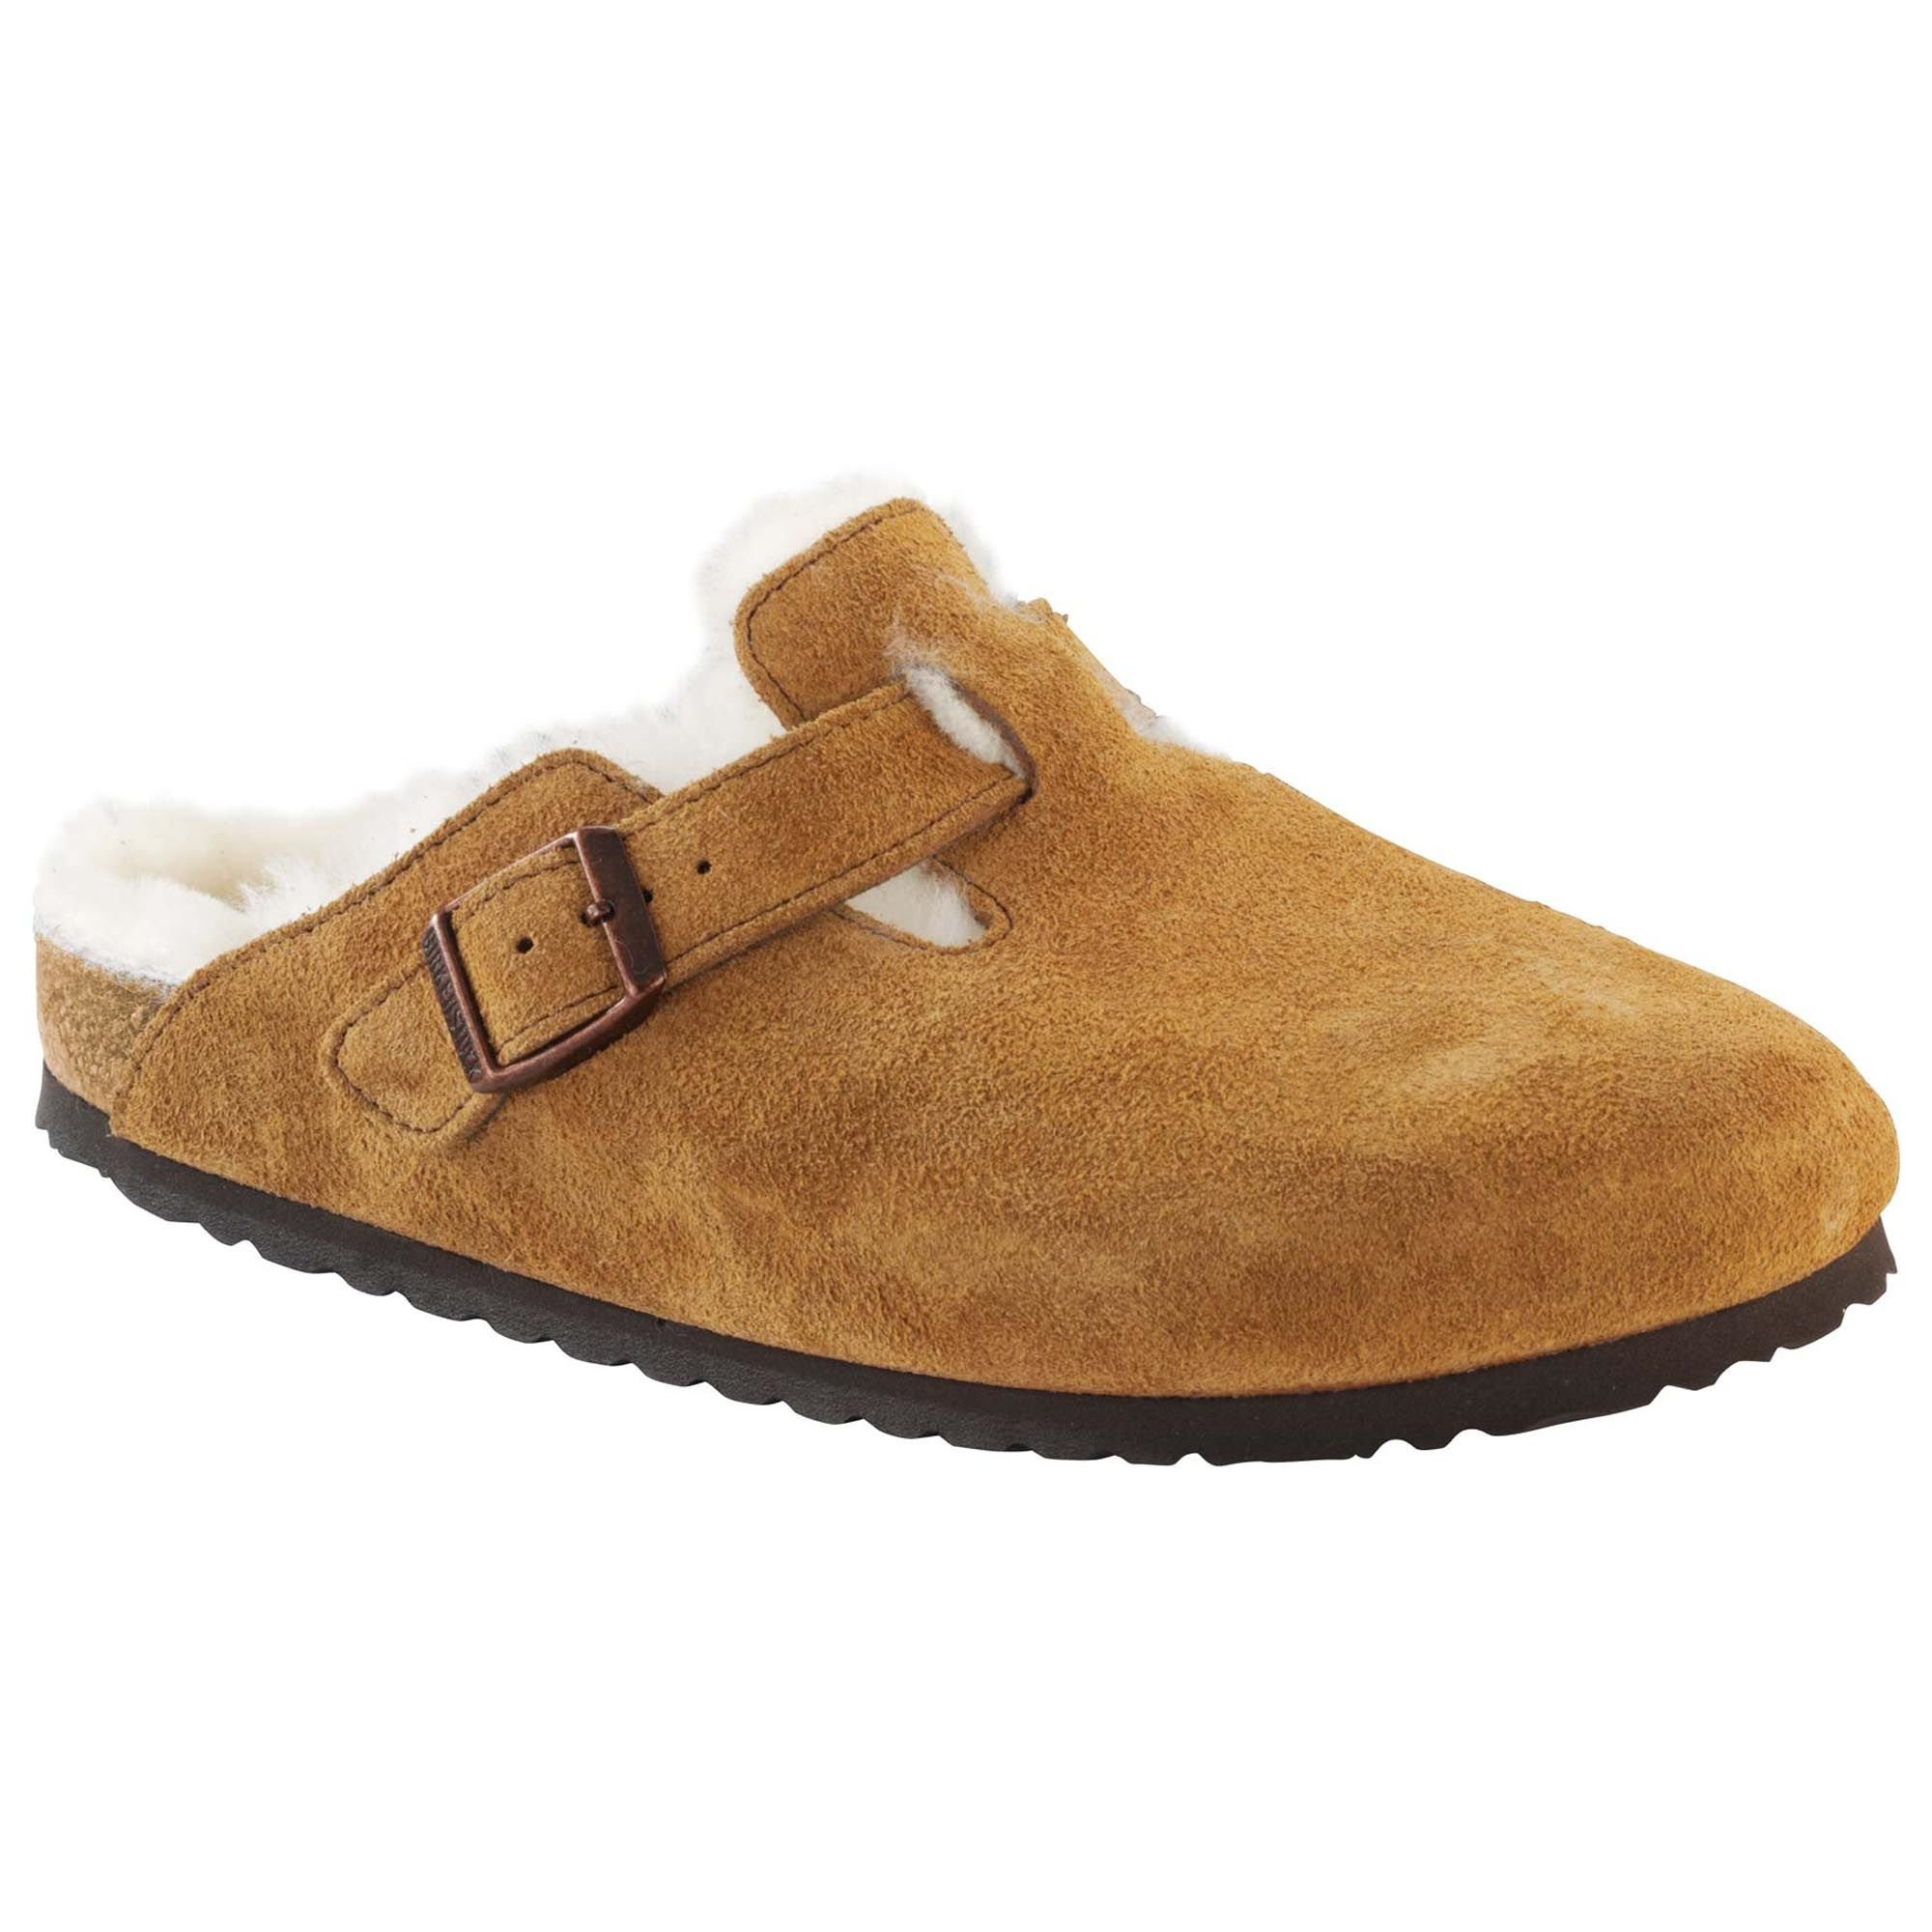 Birkenstock Boston Mink Shearling Suede Clogs 41 M (US Women's 10-10.5)